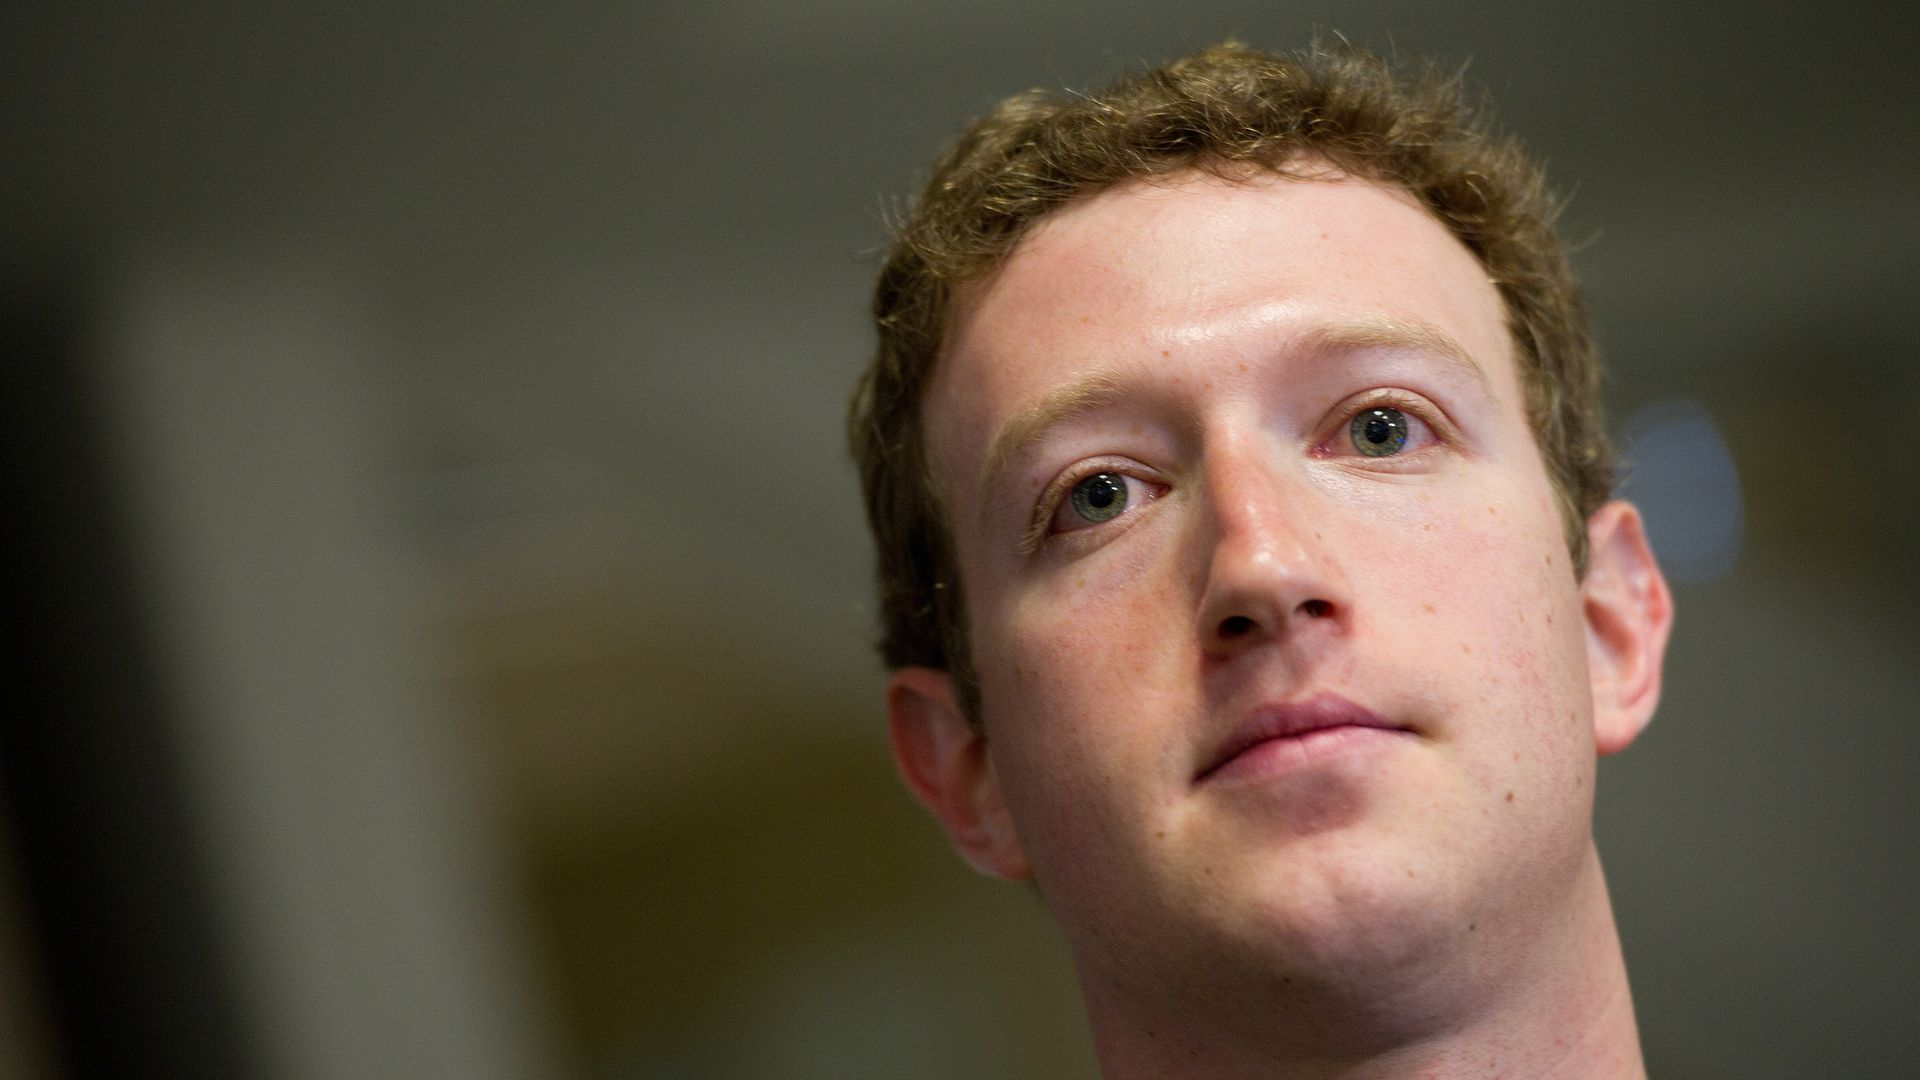 Mark Zuckerberg looks away from the camera